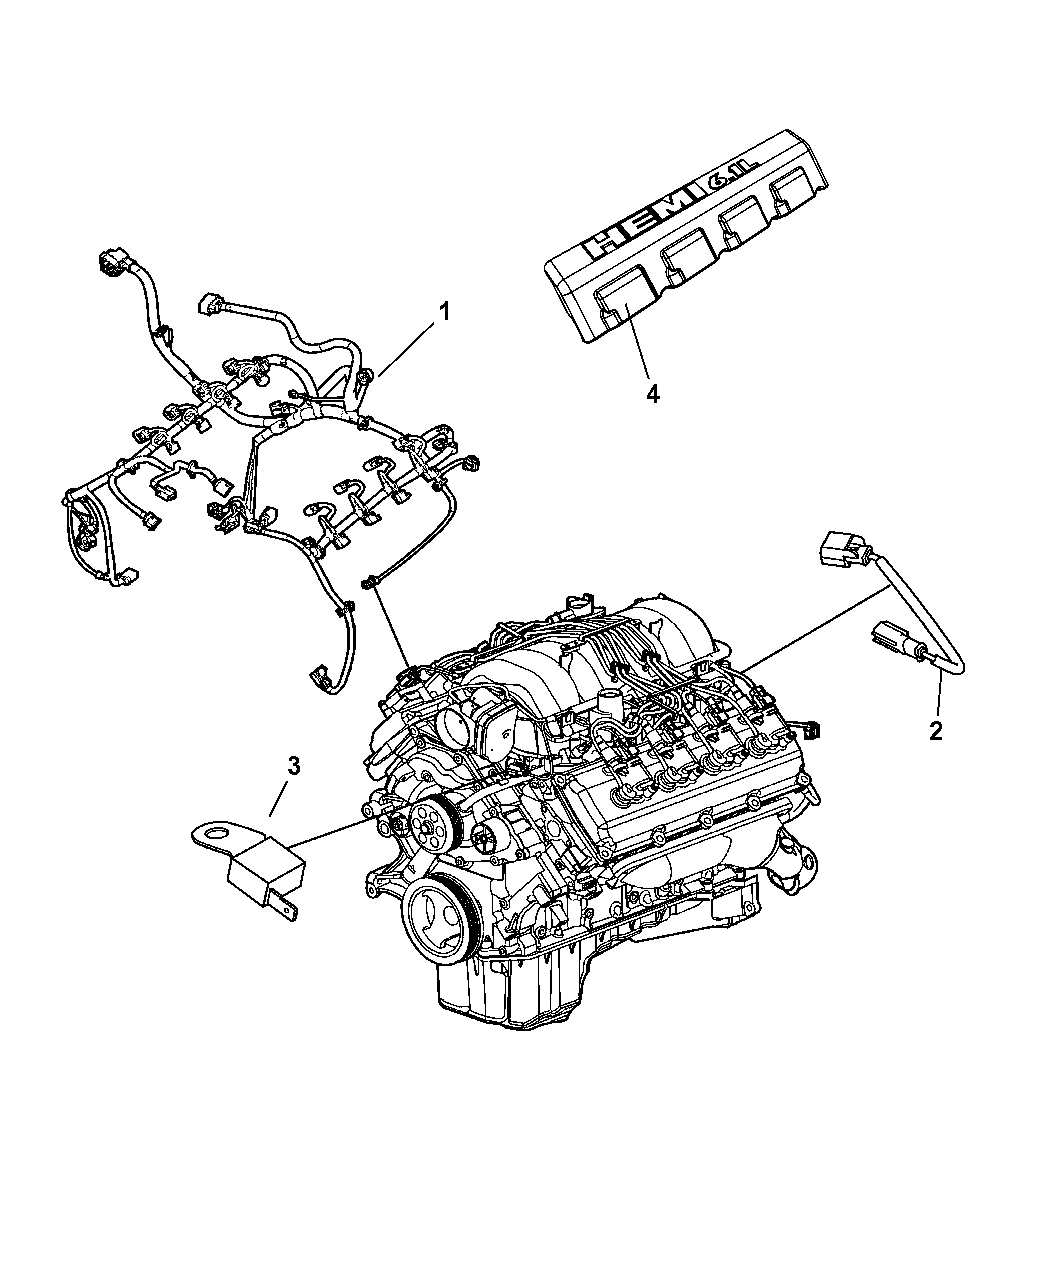 2008 Dodge Charger Engine Diagram